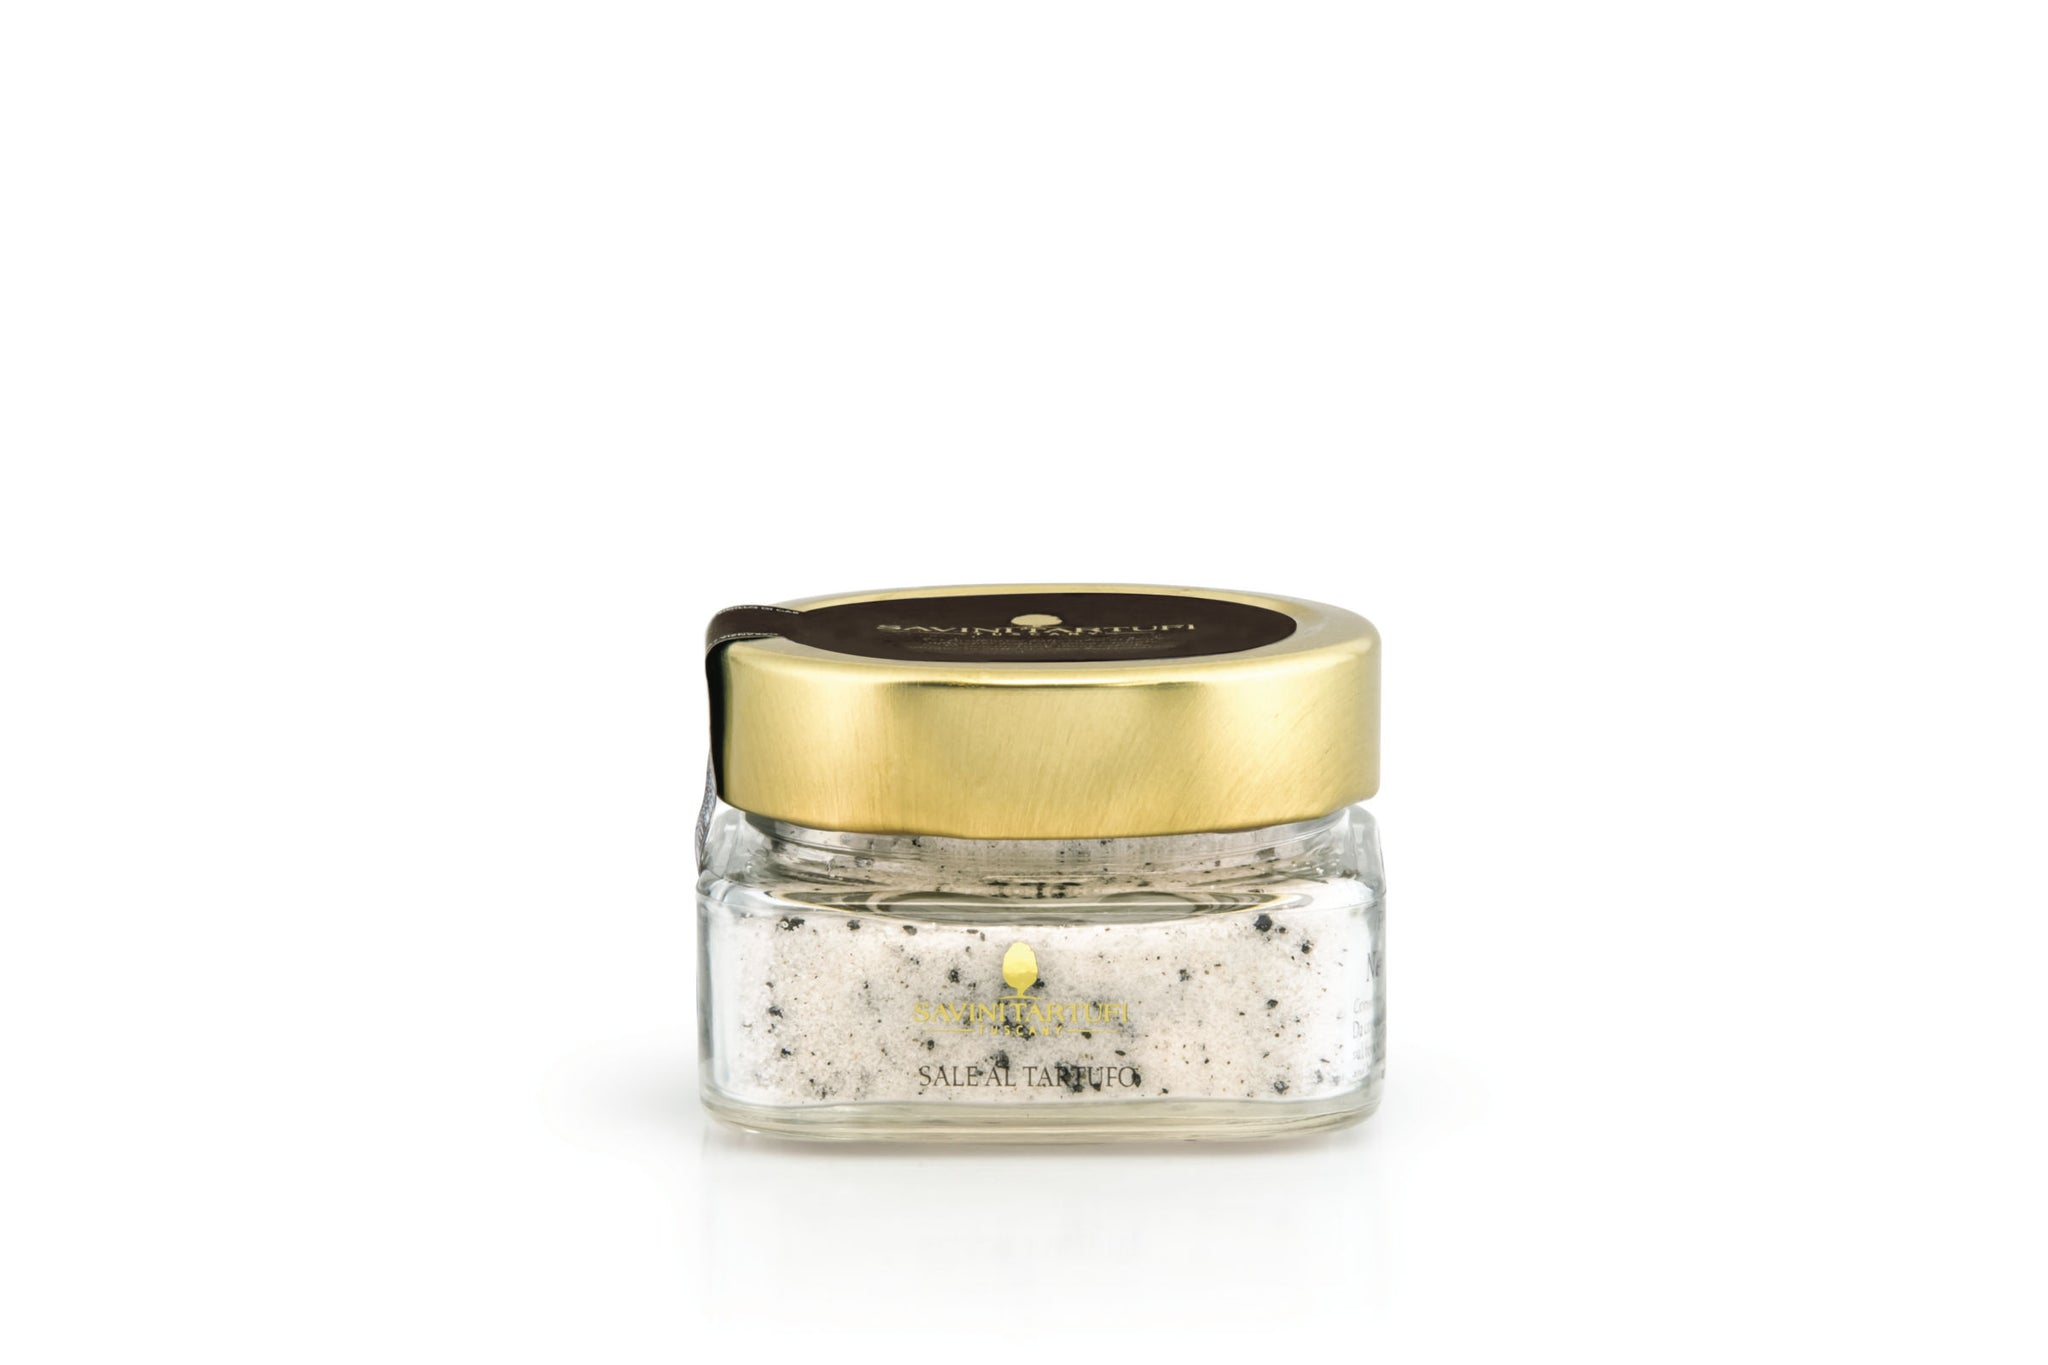 Savini Tartufi Sea Salt with Truffle - Shop authentic Italian food on the Red Beetle